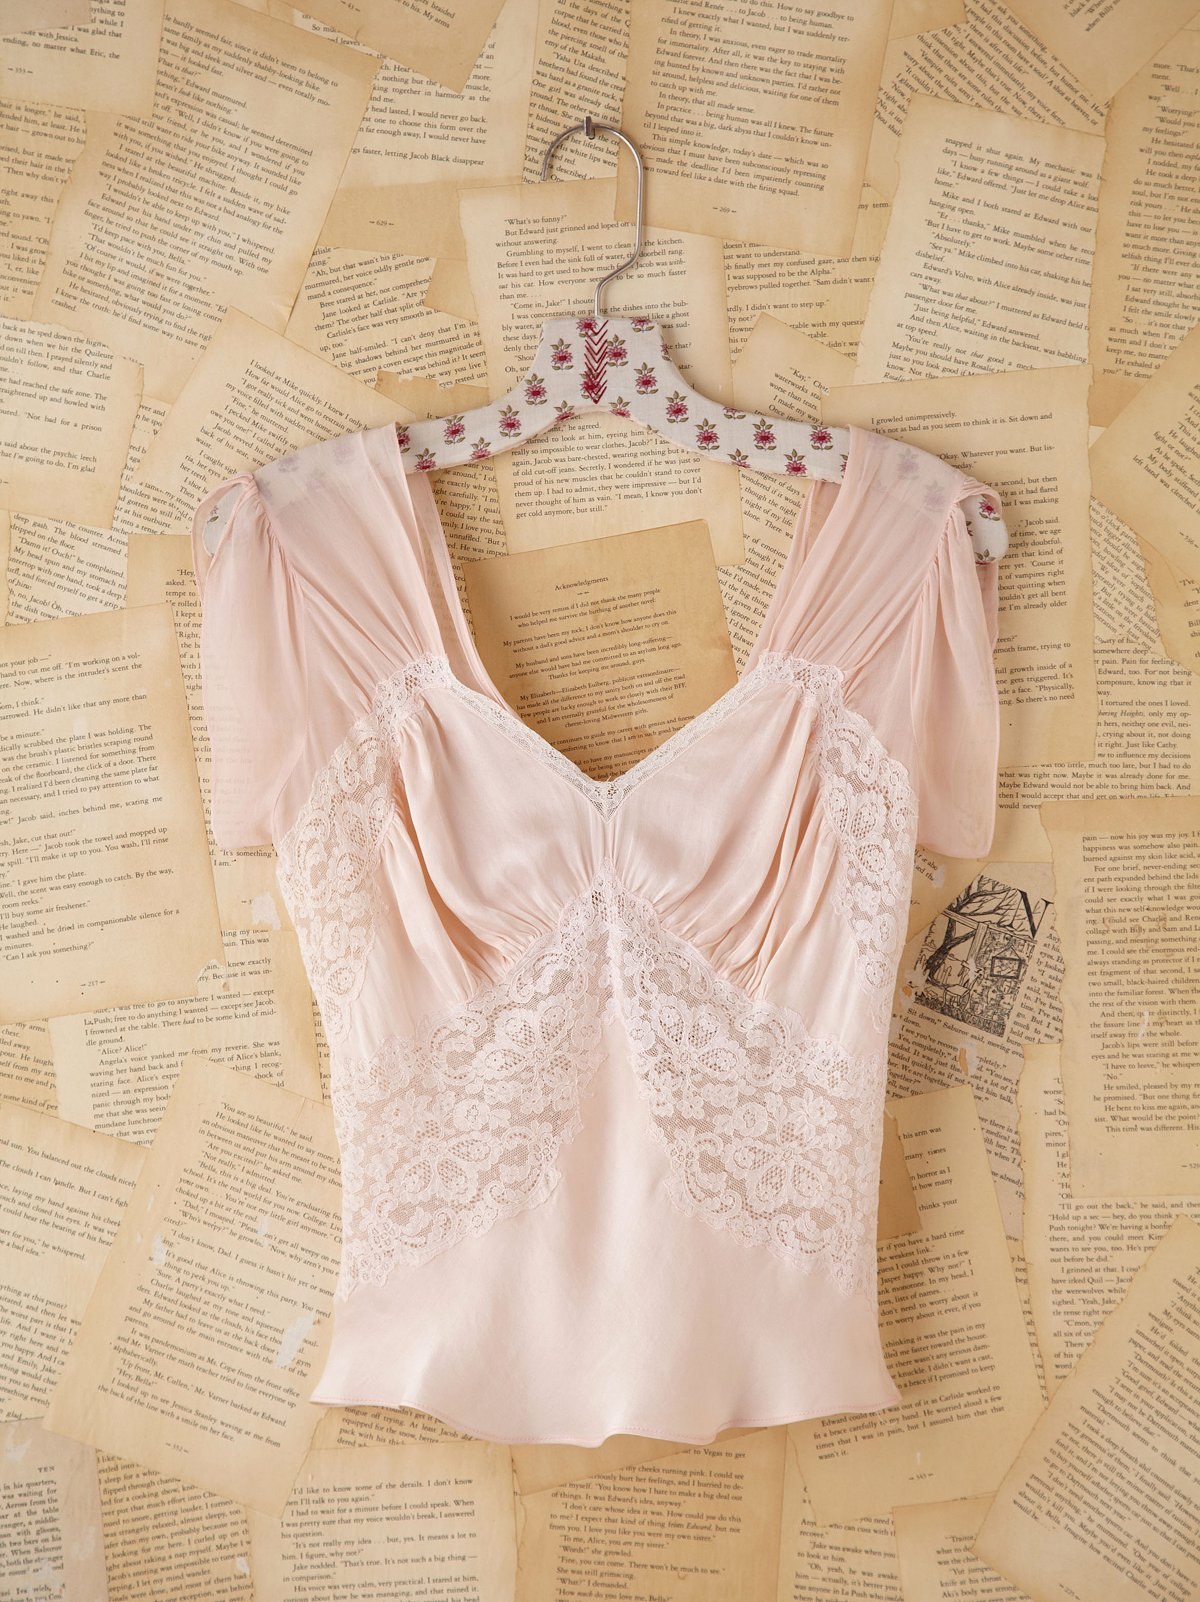 Vintage 1930s Camisole